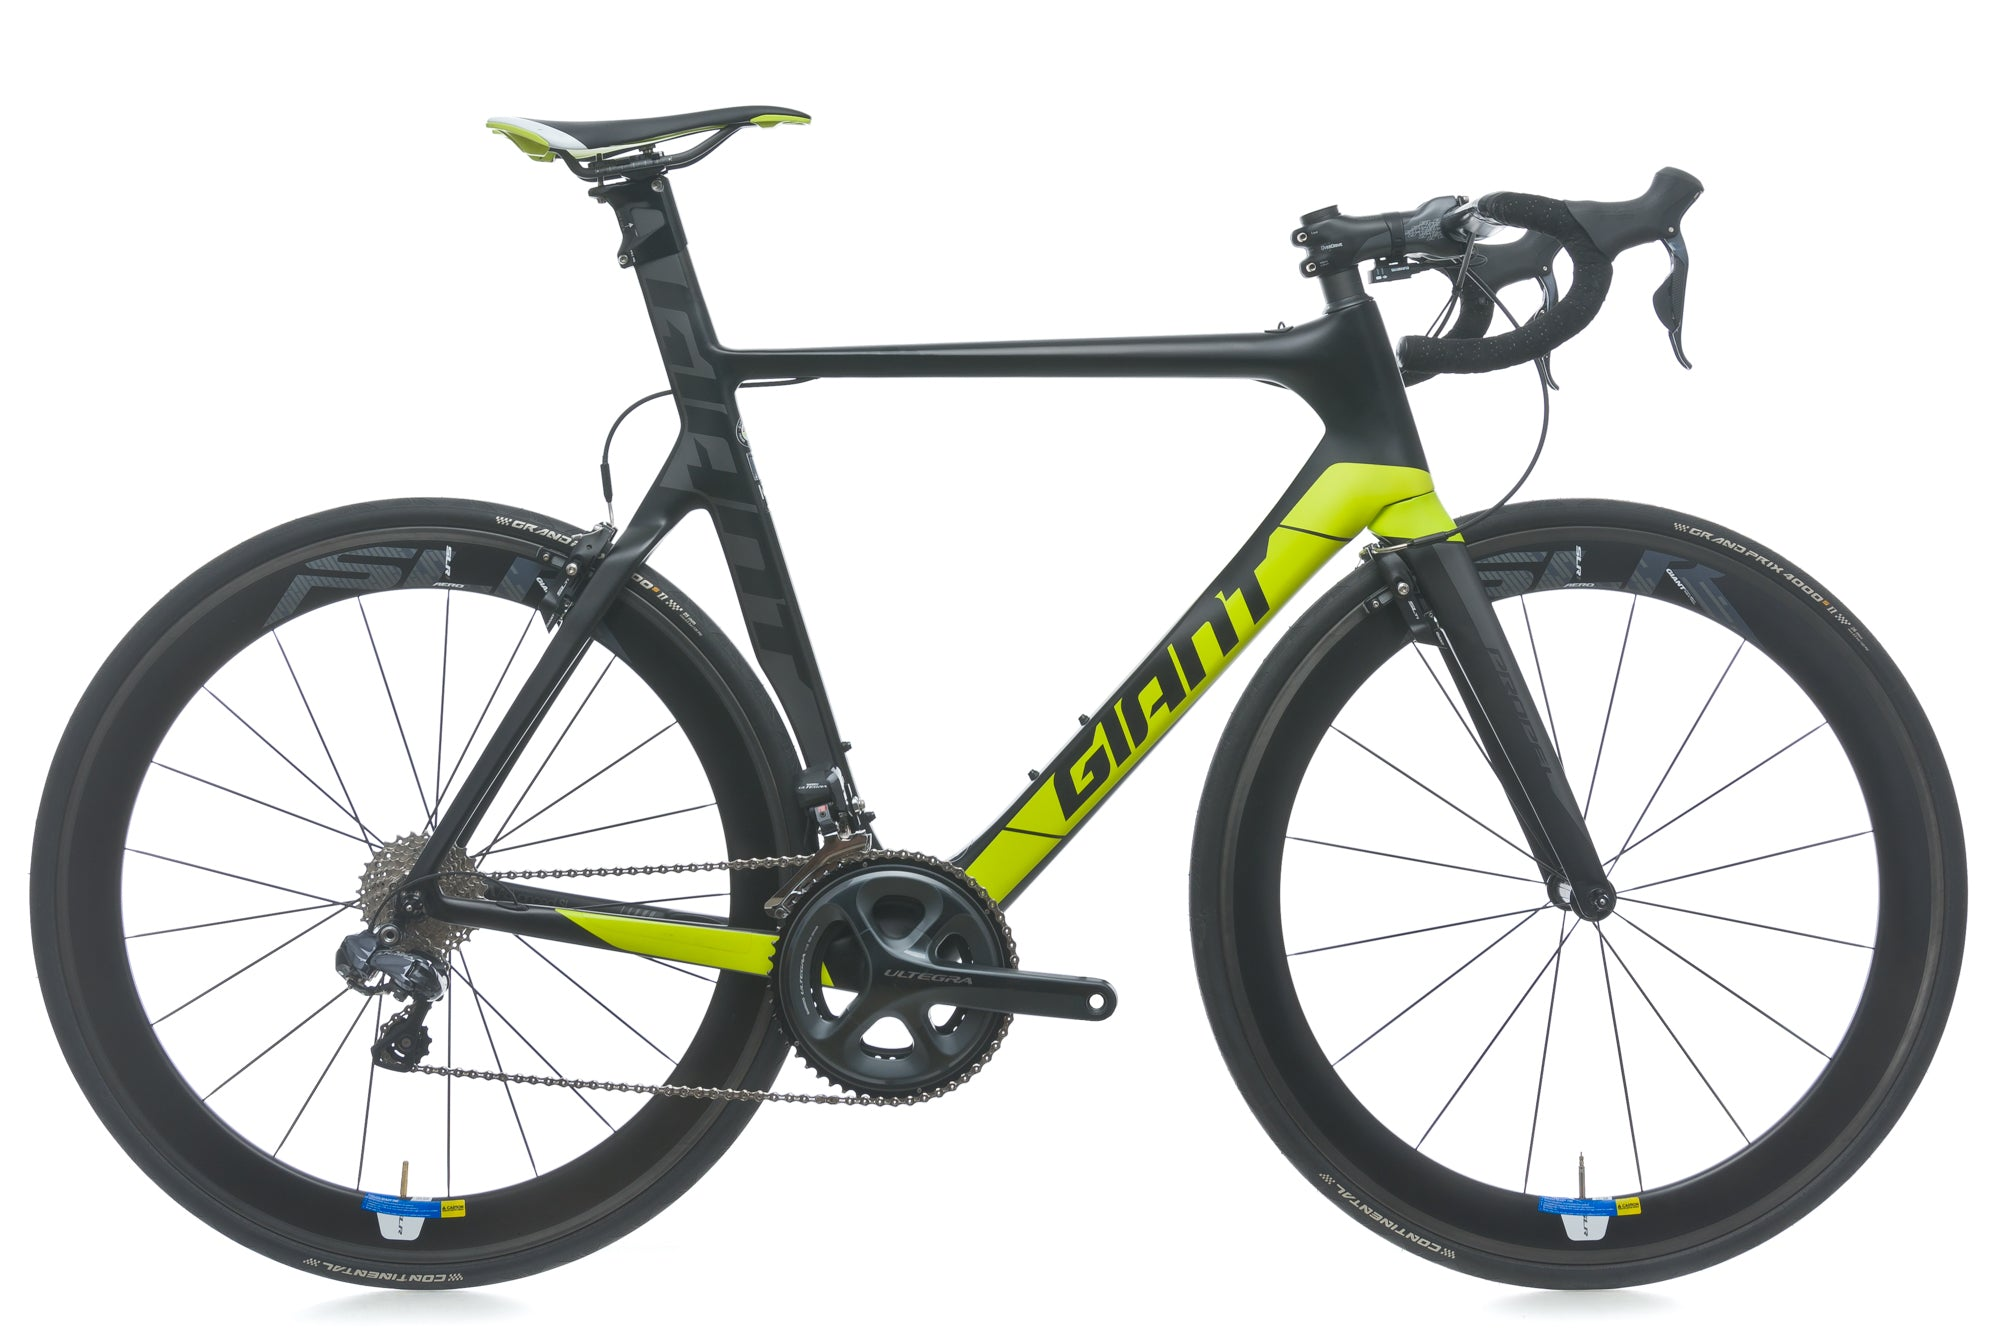 Giant Propel Advanced SL 1 Med-Large Bike - 2017 drive side